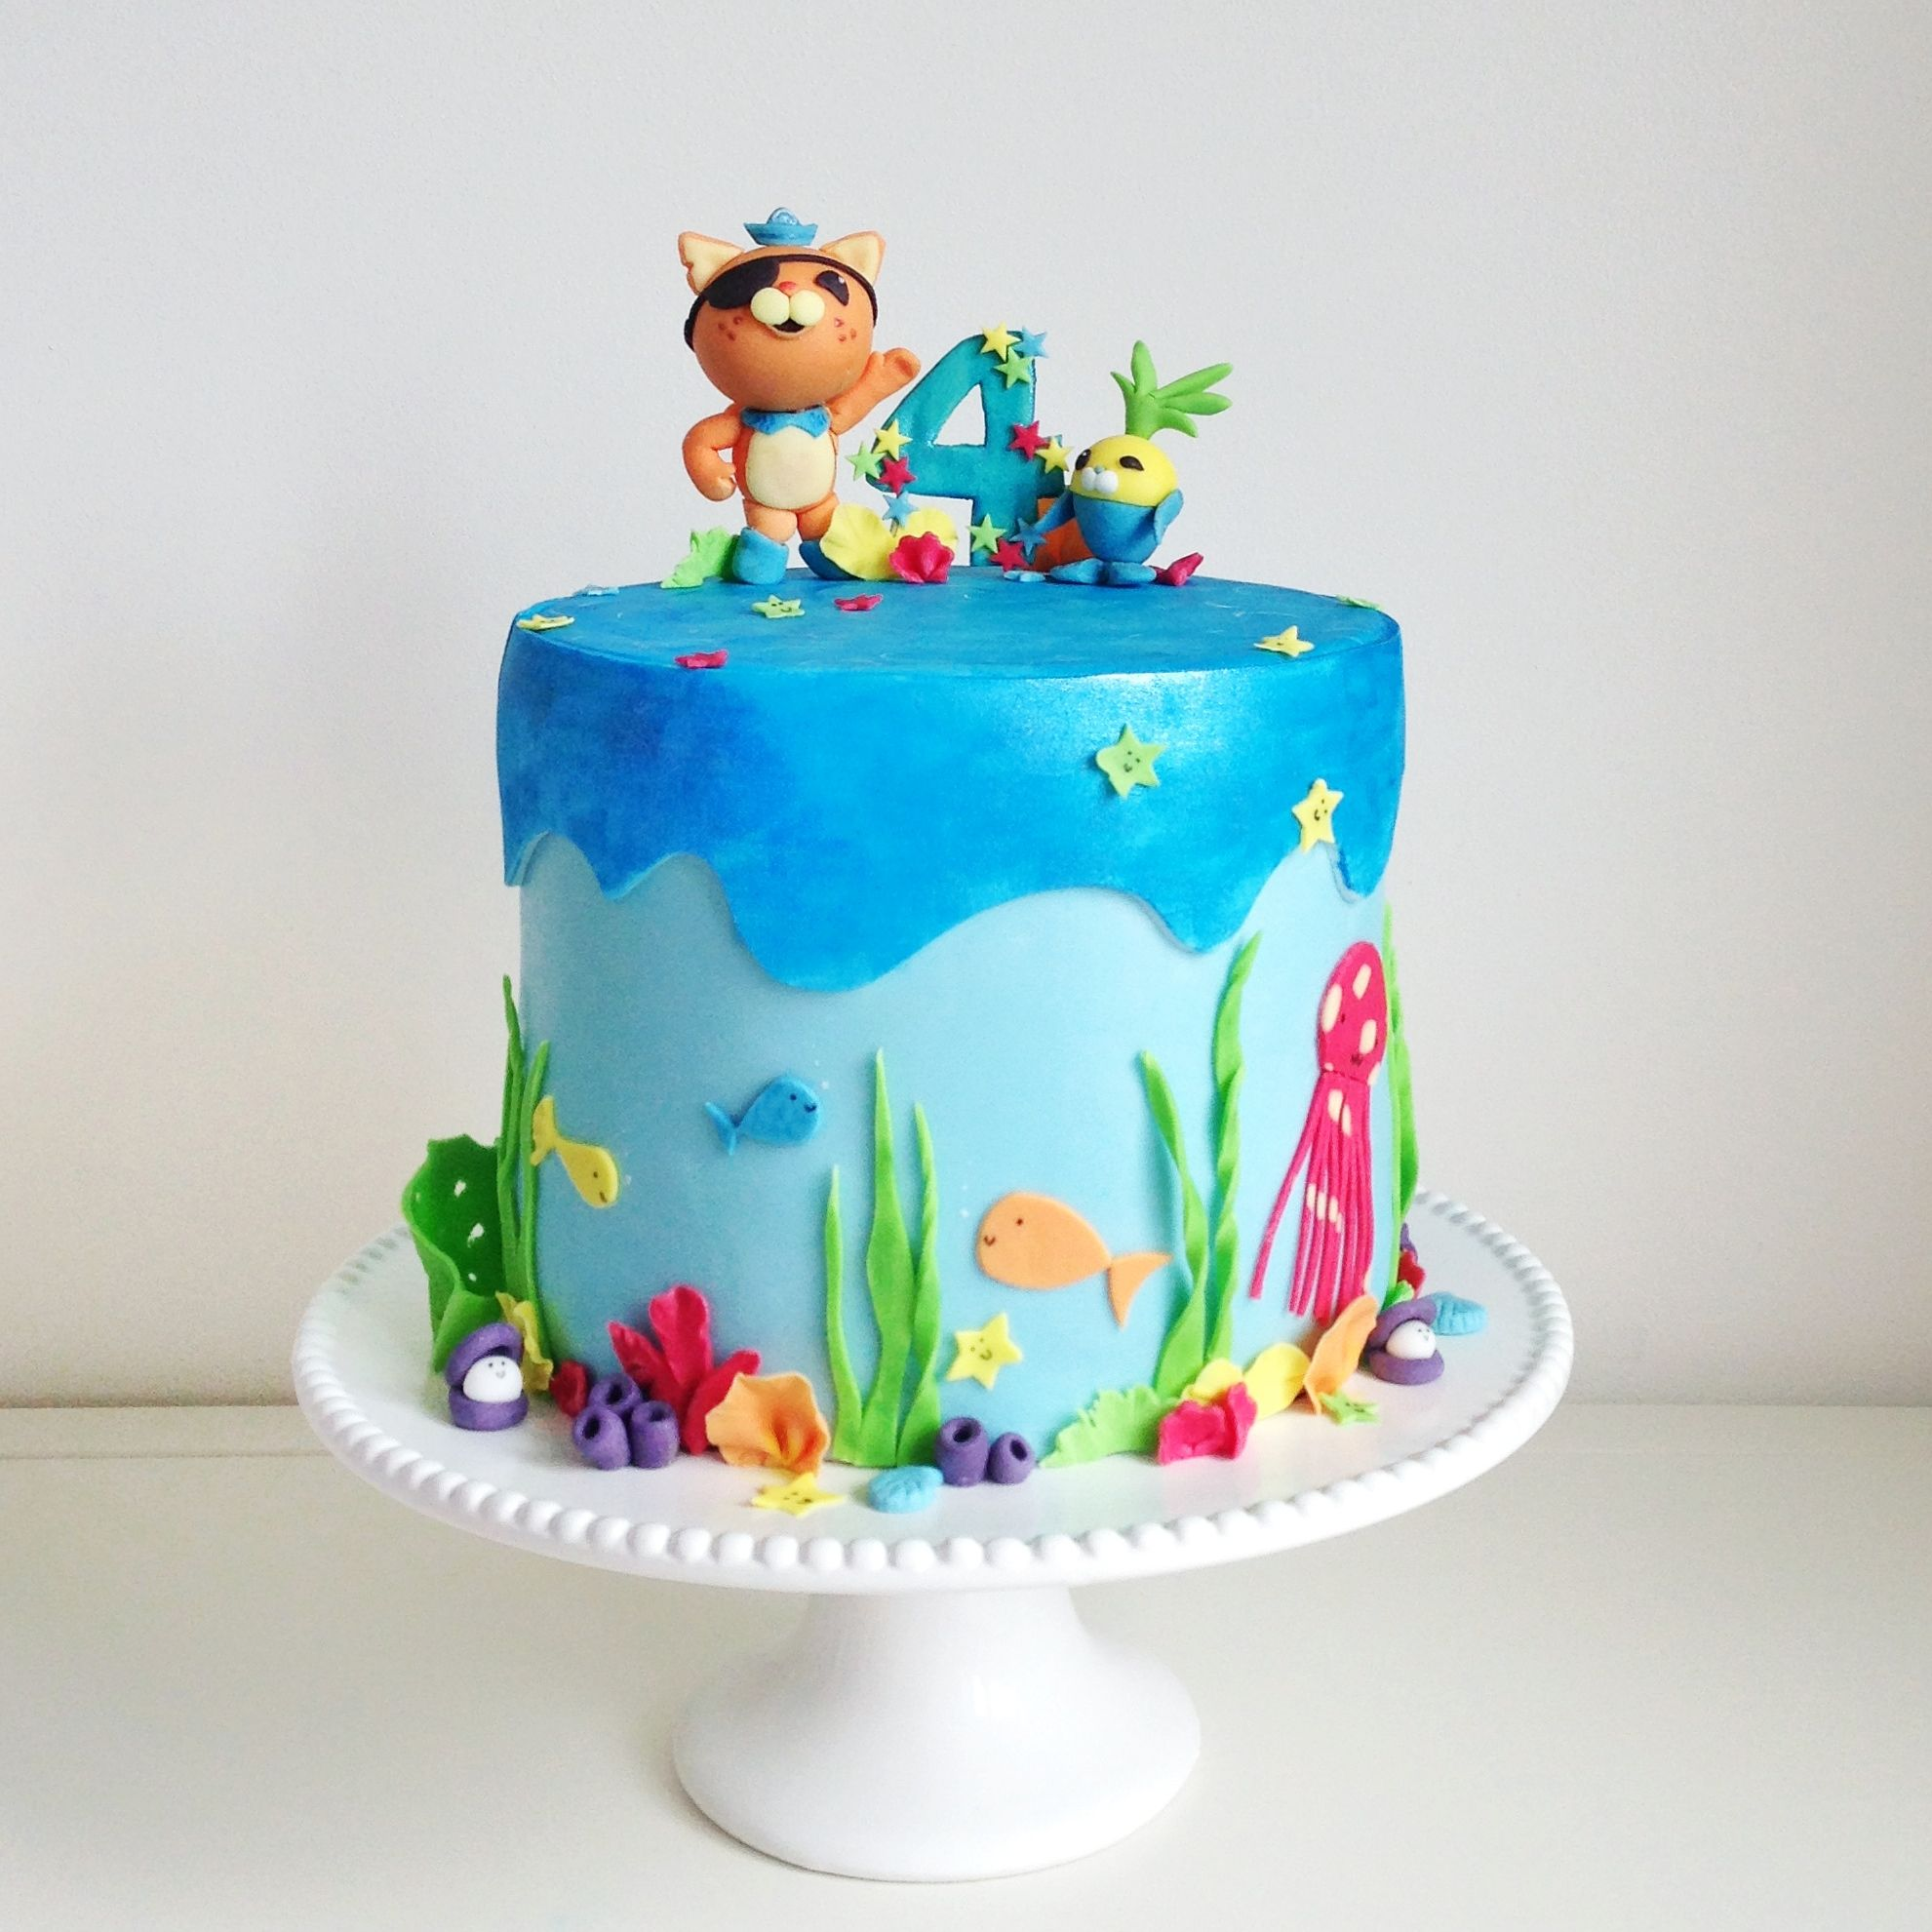 Octonauts Underwater Extravaganza with Kwazii & Tunip Edible Toppers - 4th Birthday Cake, chocolate with Oreo buttercream frosting & chocolate ganache